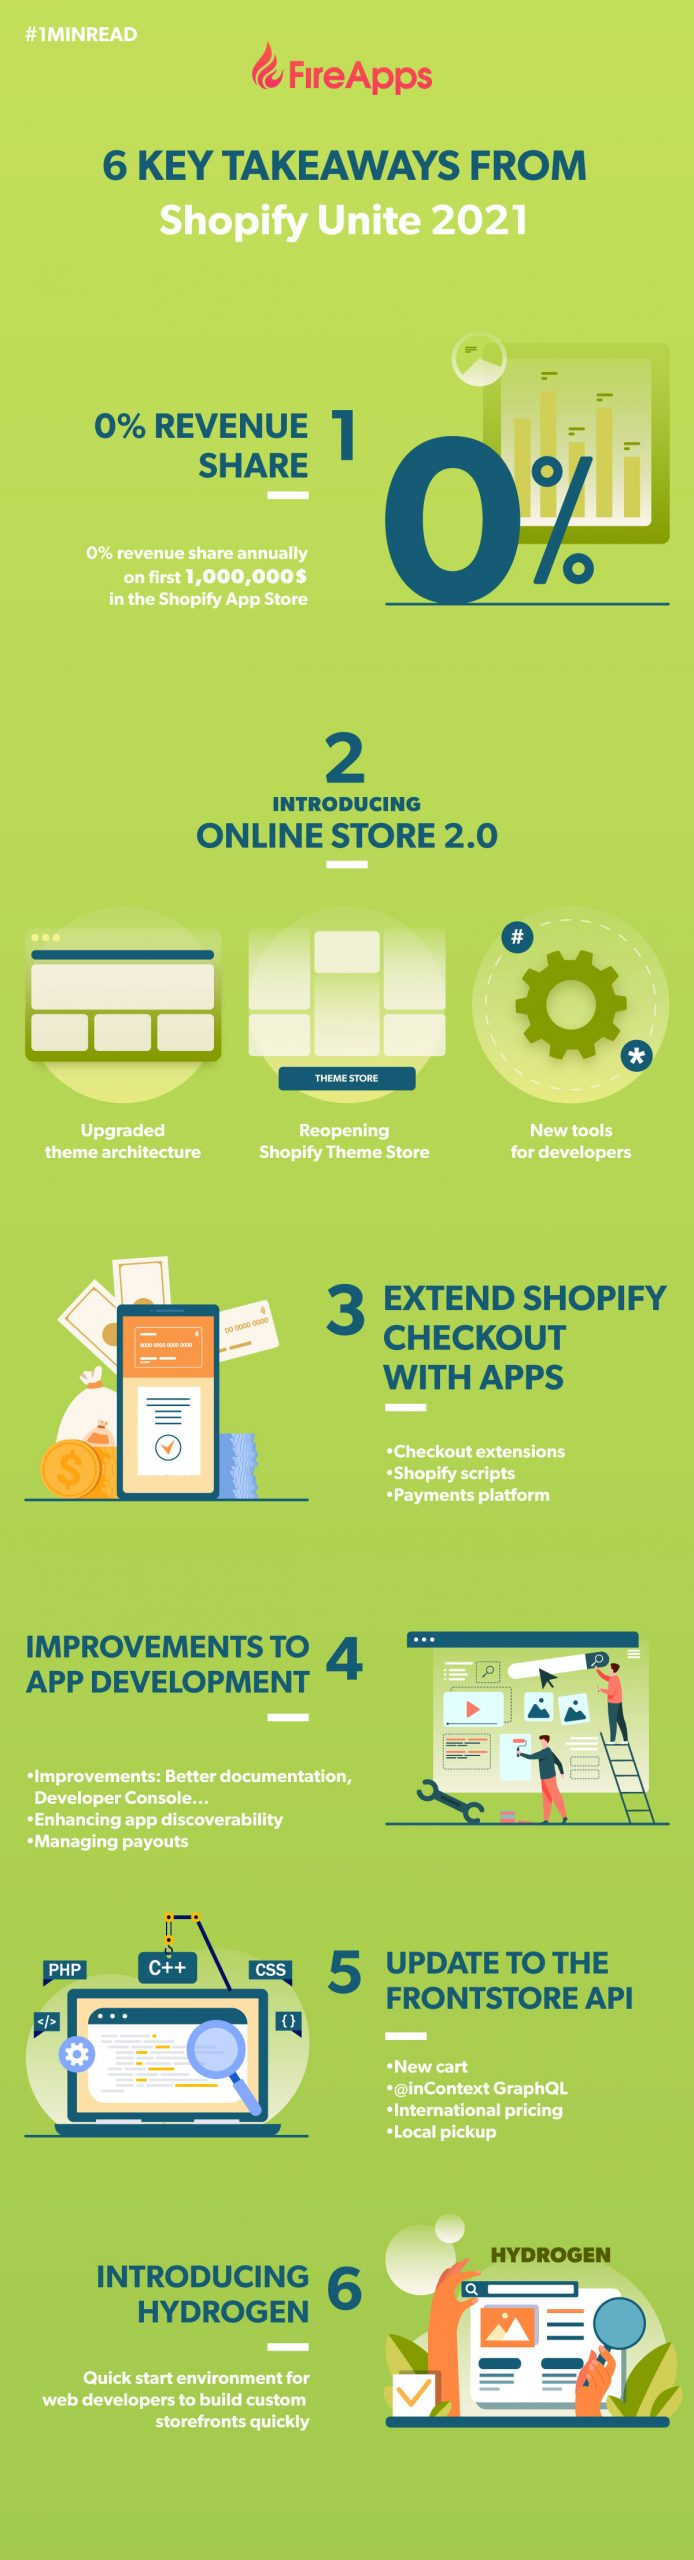 Infographic: 6 key takeaways from 2021 Shopify Unite